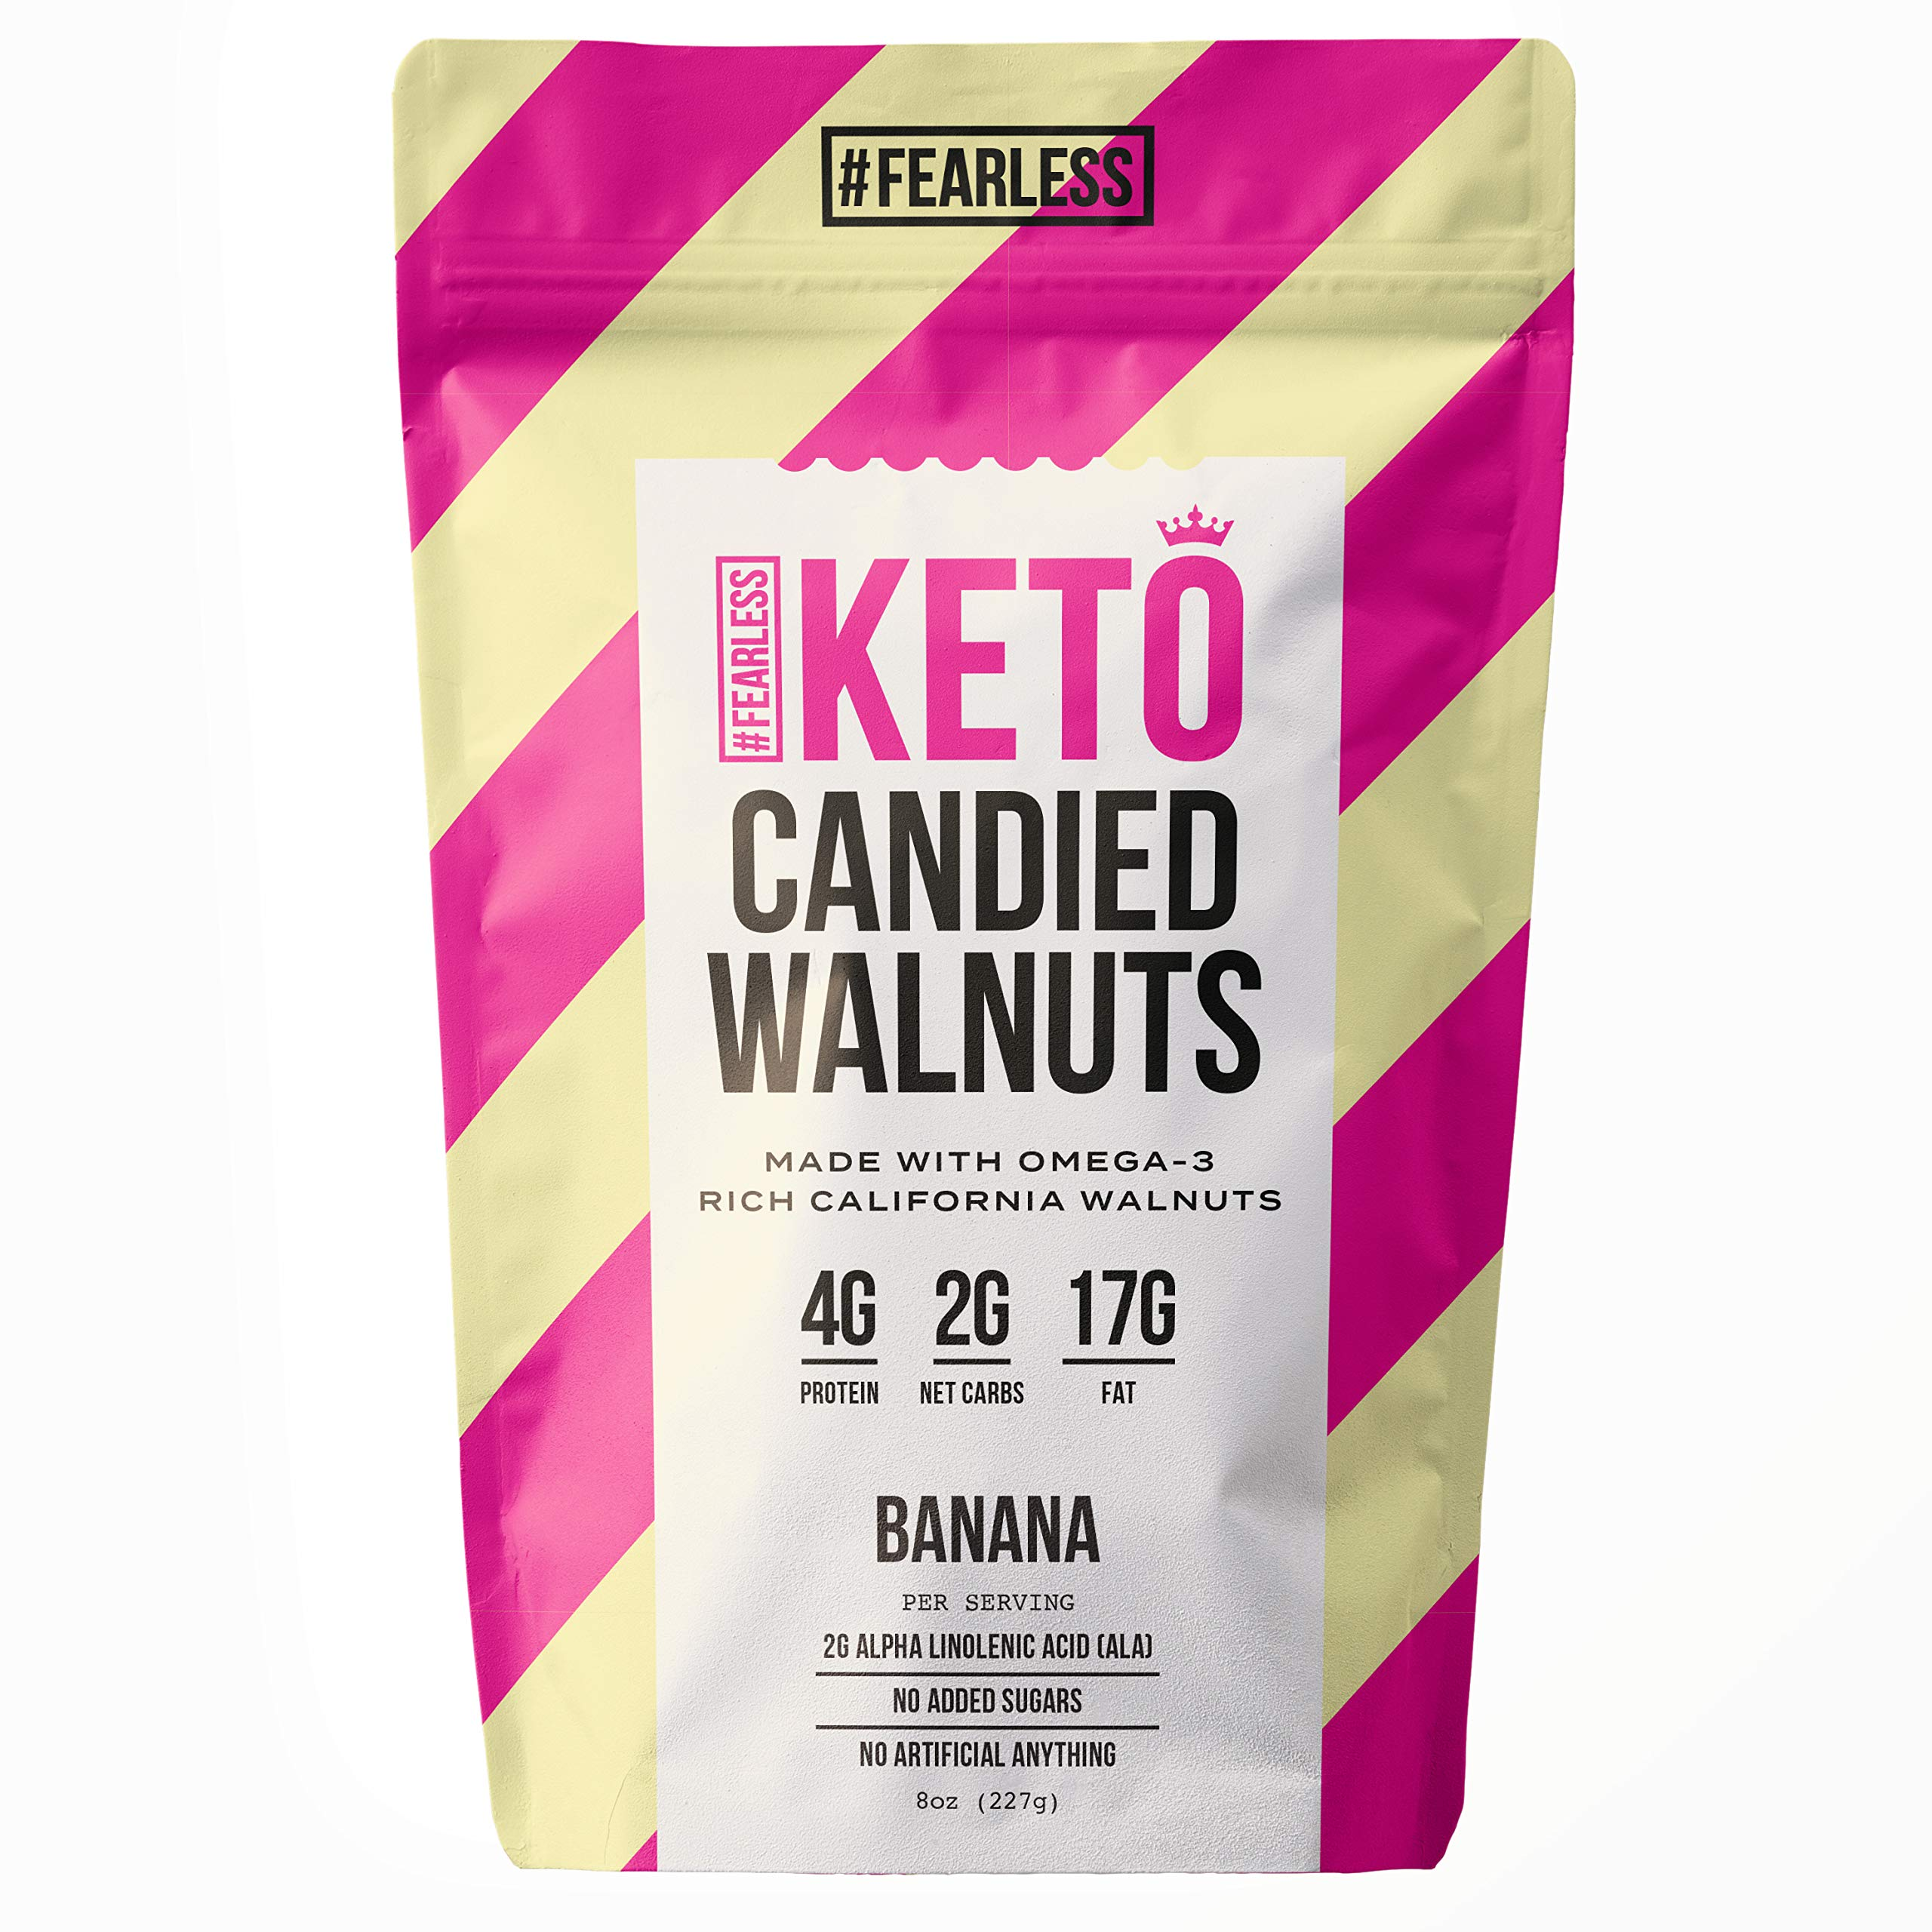 Fearless Keto Small Batch Hand-Roasted Candied Walnuts, 2g Net Carb, High Protein, Monk Fruit Sweetened, Nut Mix, Made with Omega-3 Rich California Walnuts, 8 oz (Banana Flavor) by Fearless Keto